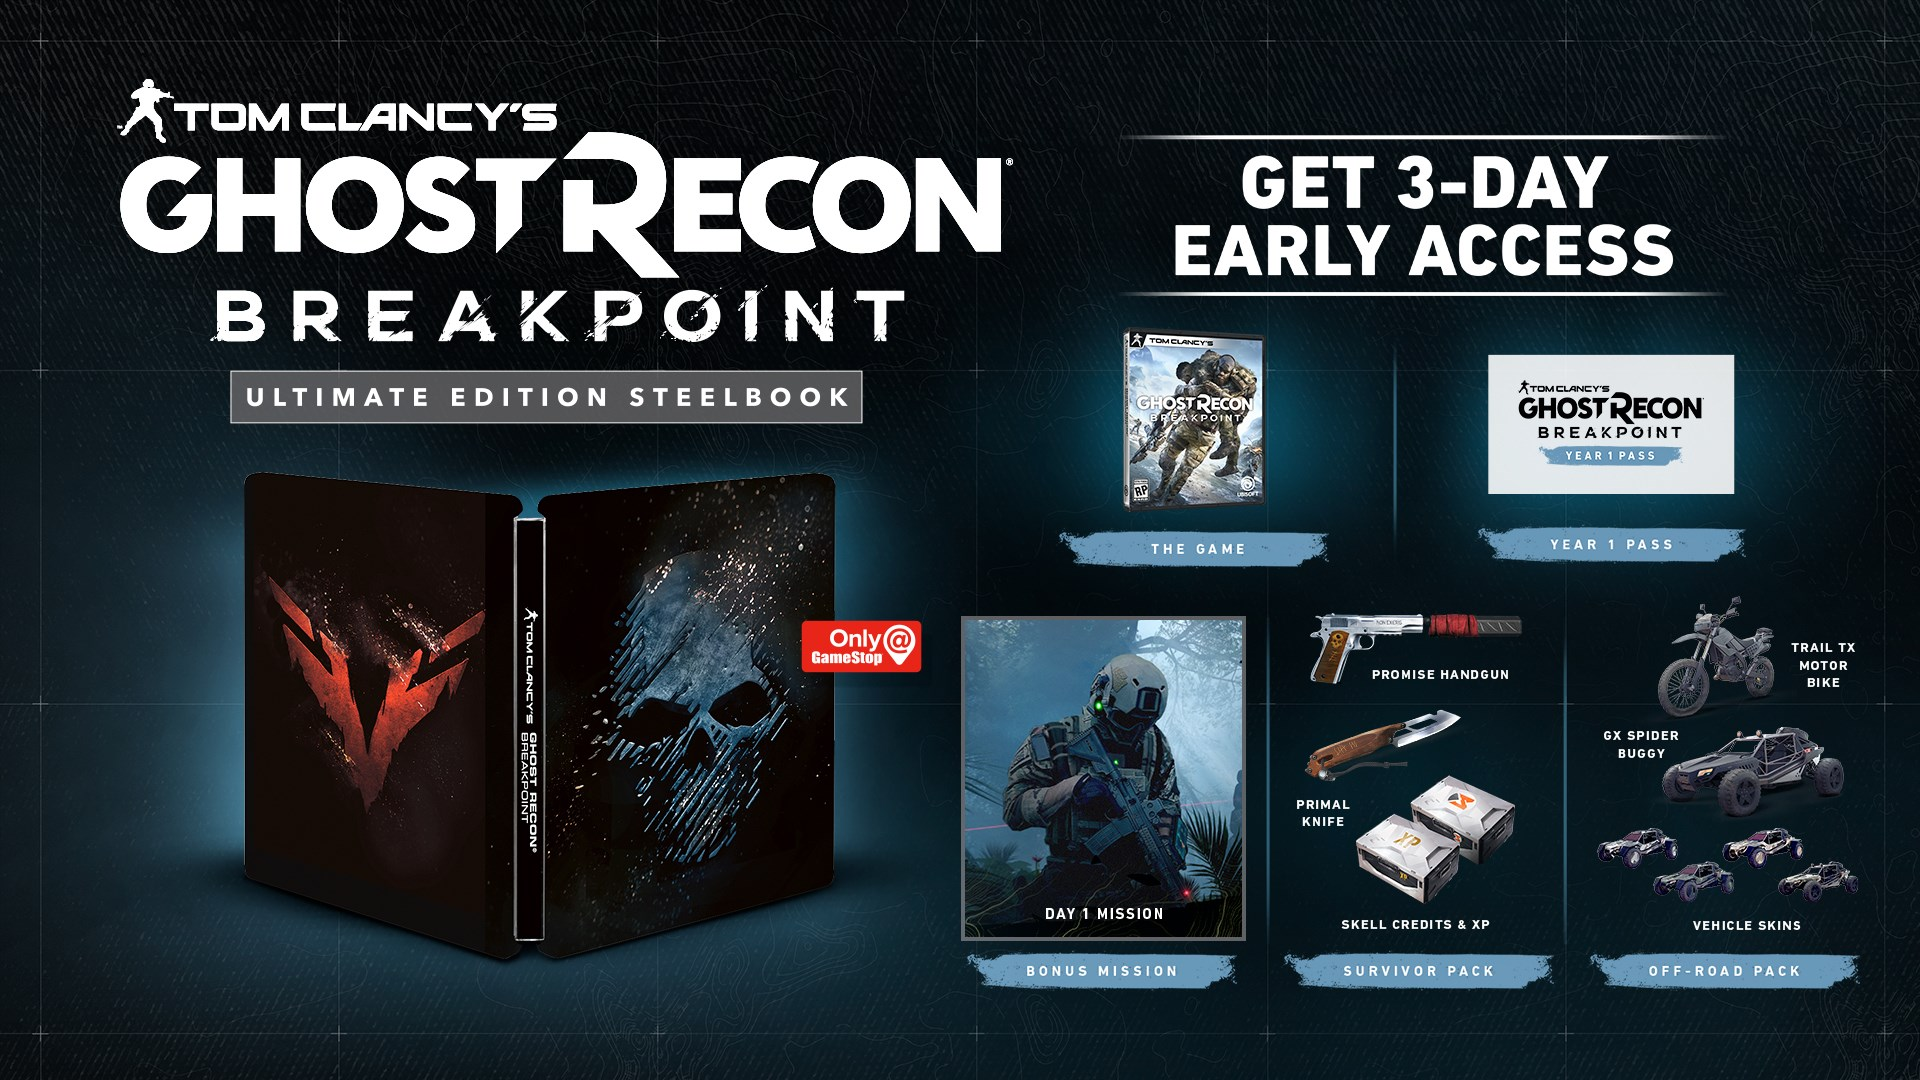 /attachments/181145201022225017079004052047245155177027236236/Ghost-Recon-Breakpoint-Steelbook-Ultimate-Edition.jpg